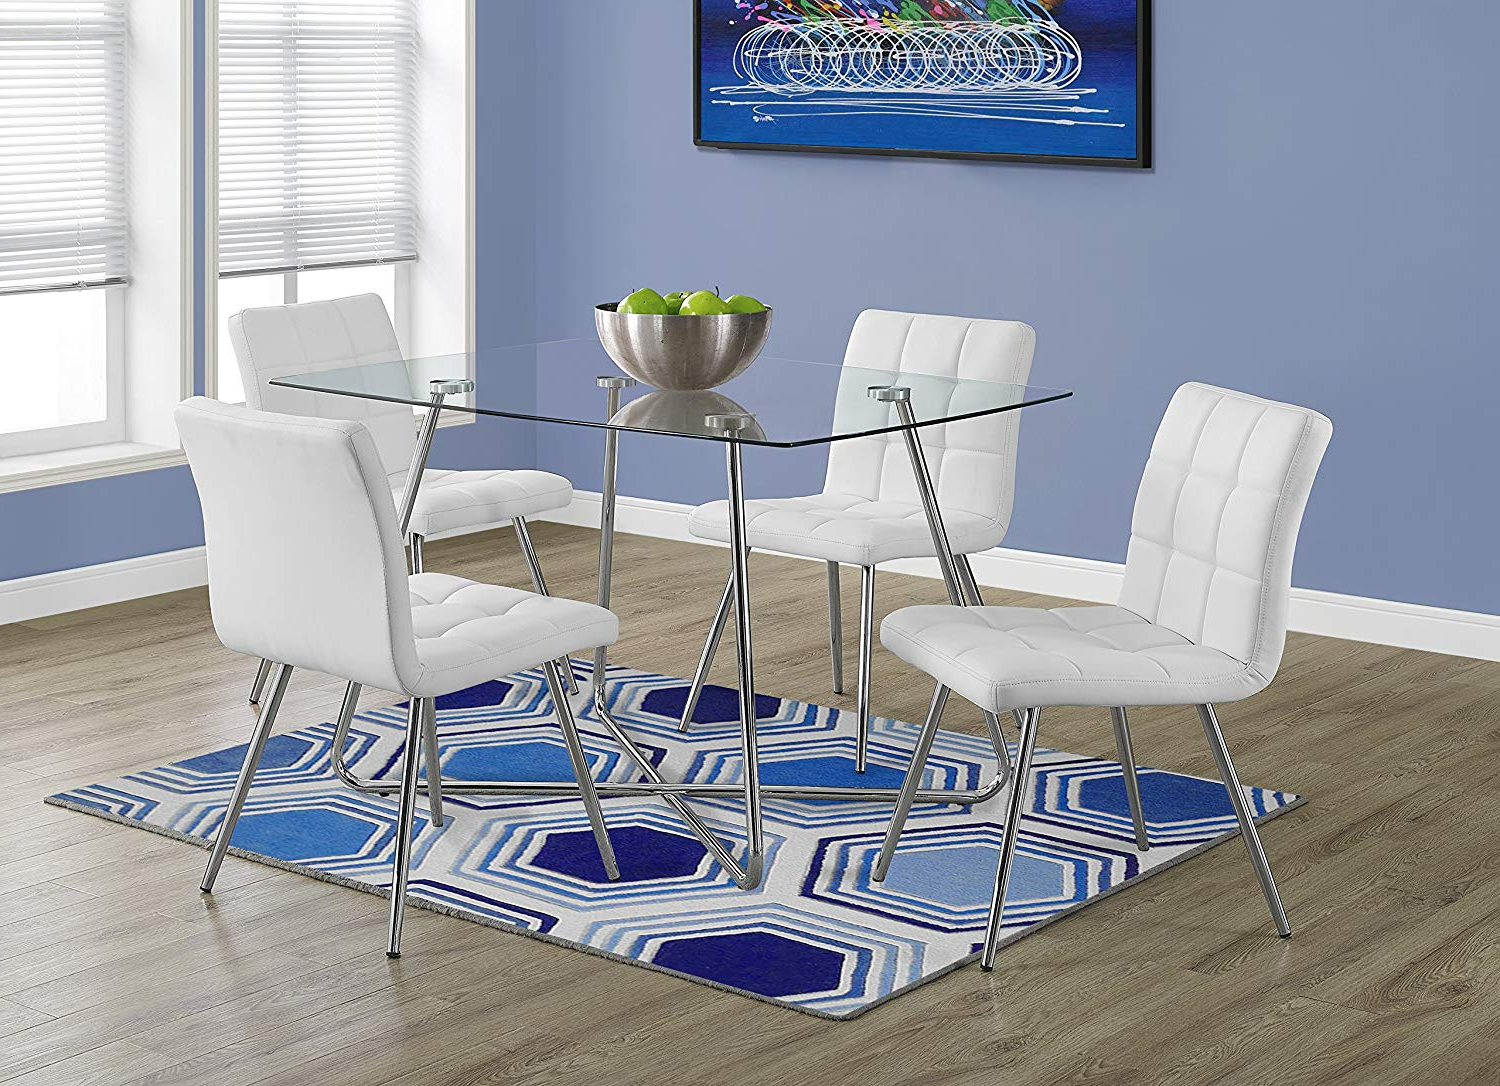 """Popular Chrome Dining Tables With Tempered Glass Pertaining To Monarch Specialties Chrome With 8 Mm Tempered Glass Dining Table, 36"""" X 48"""", Silver (View 8 of 25)"""